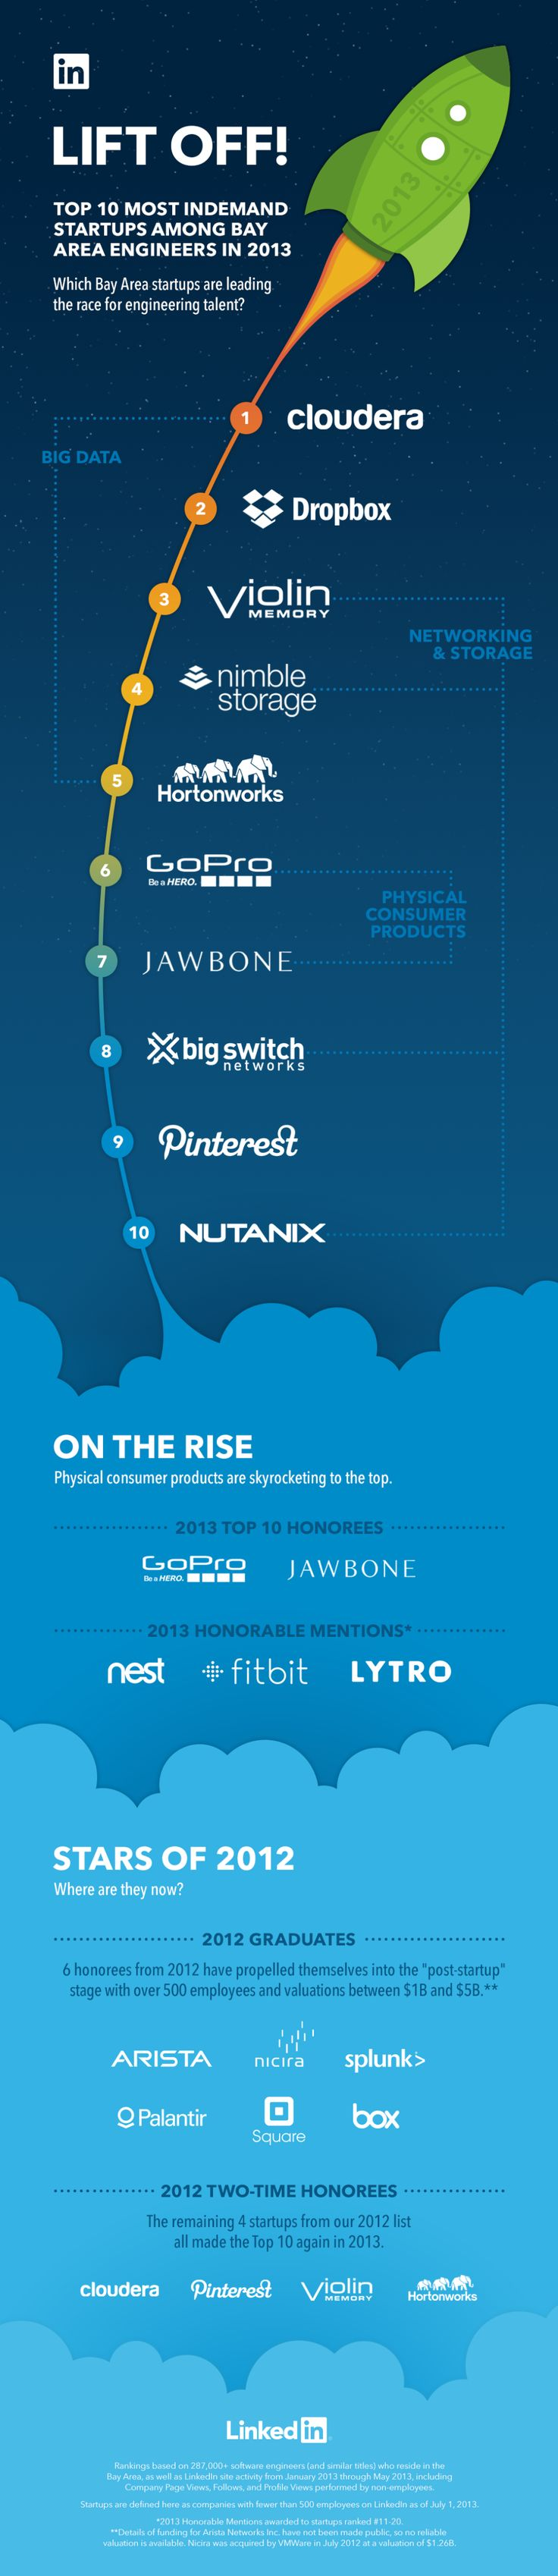 silicon valleys 10 most indemand startups in 2013 by linkedin infographic hbo ilicon valley39 tech